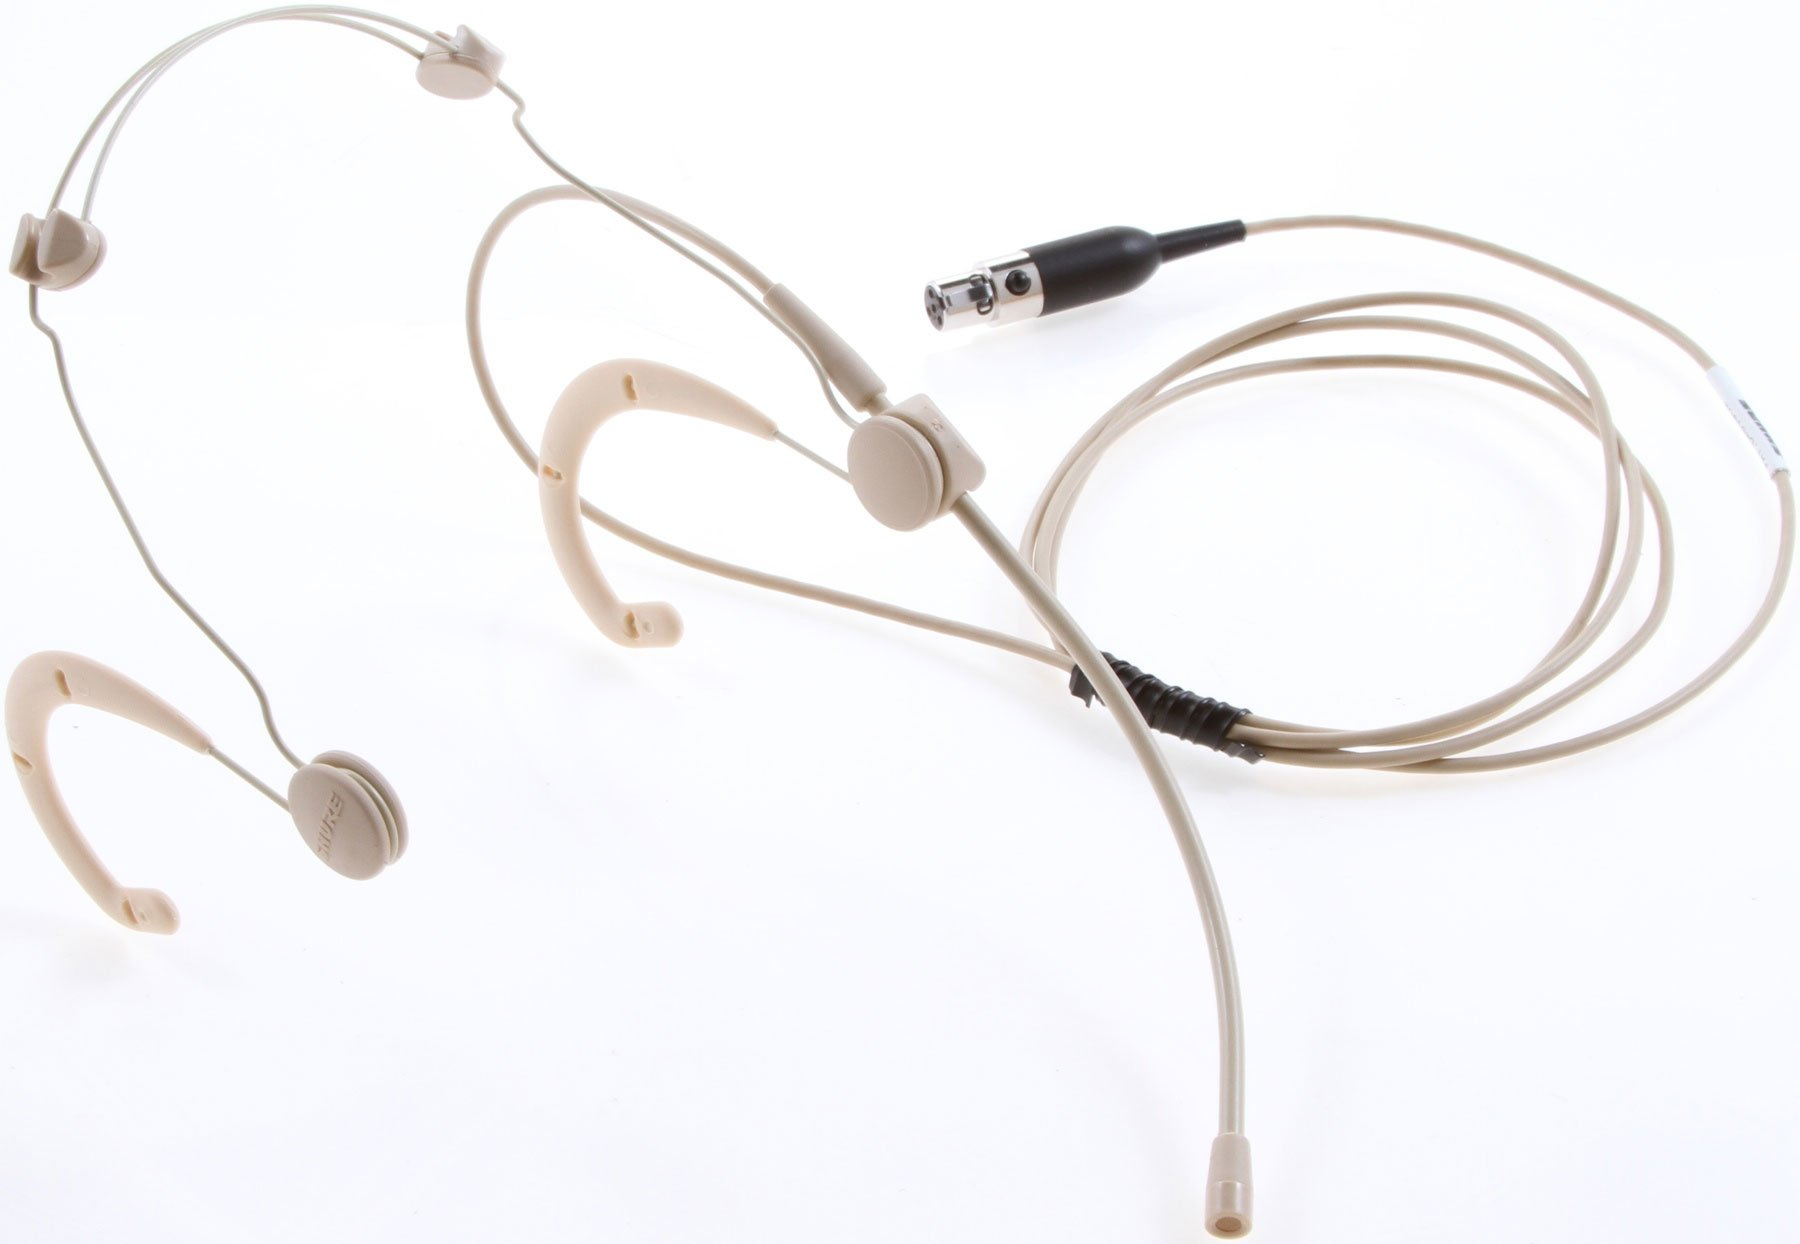 BETA 53 Omnidiredctional Headworn Microphone for Wireless with TA4F Connectors in Tan